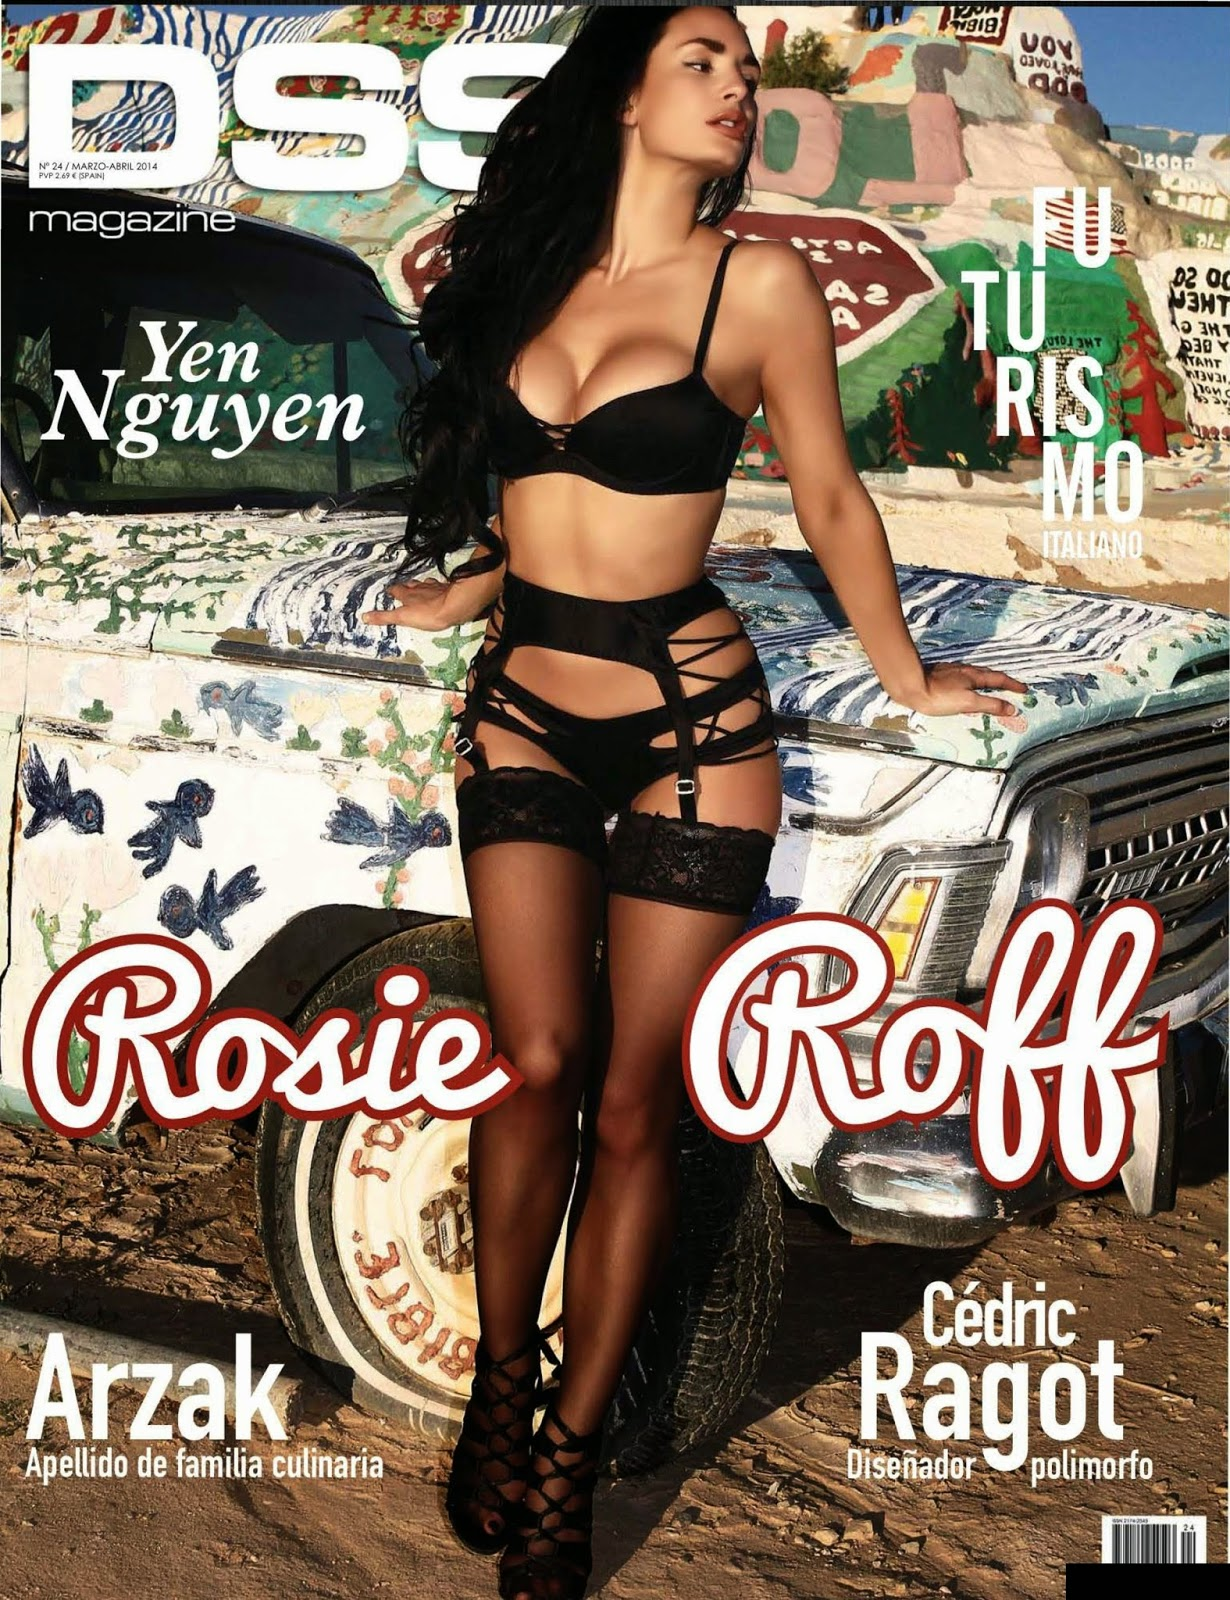 Rosie Roff On The Cover Of DSS Magazine (NSFW)